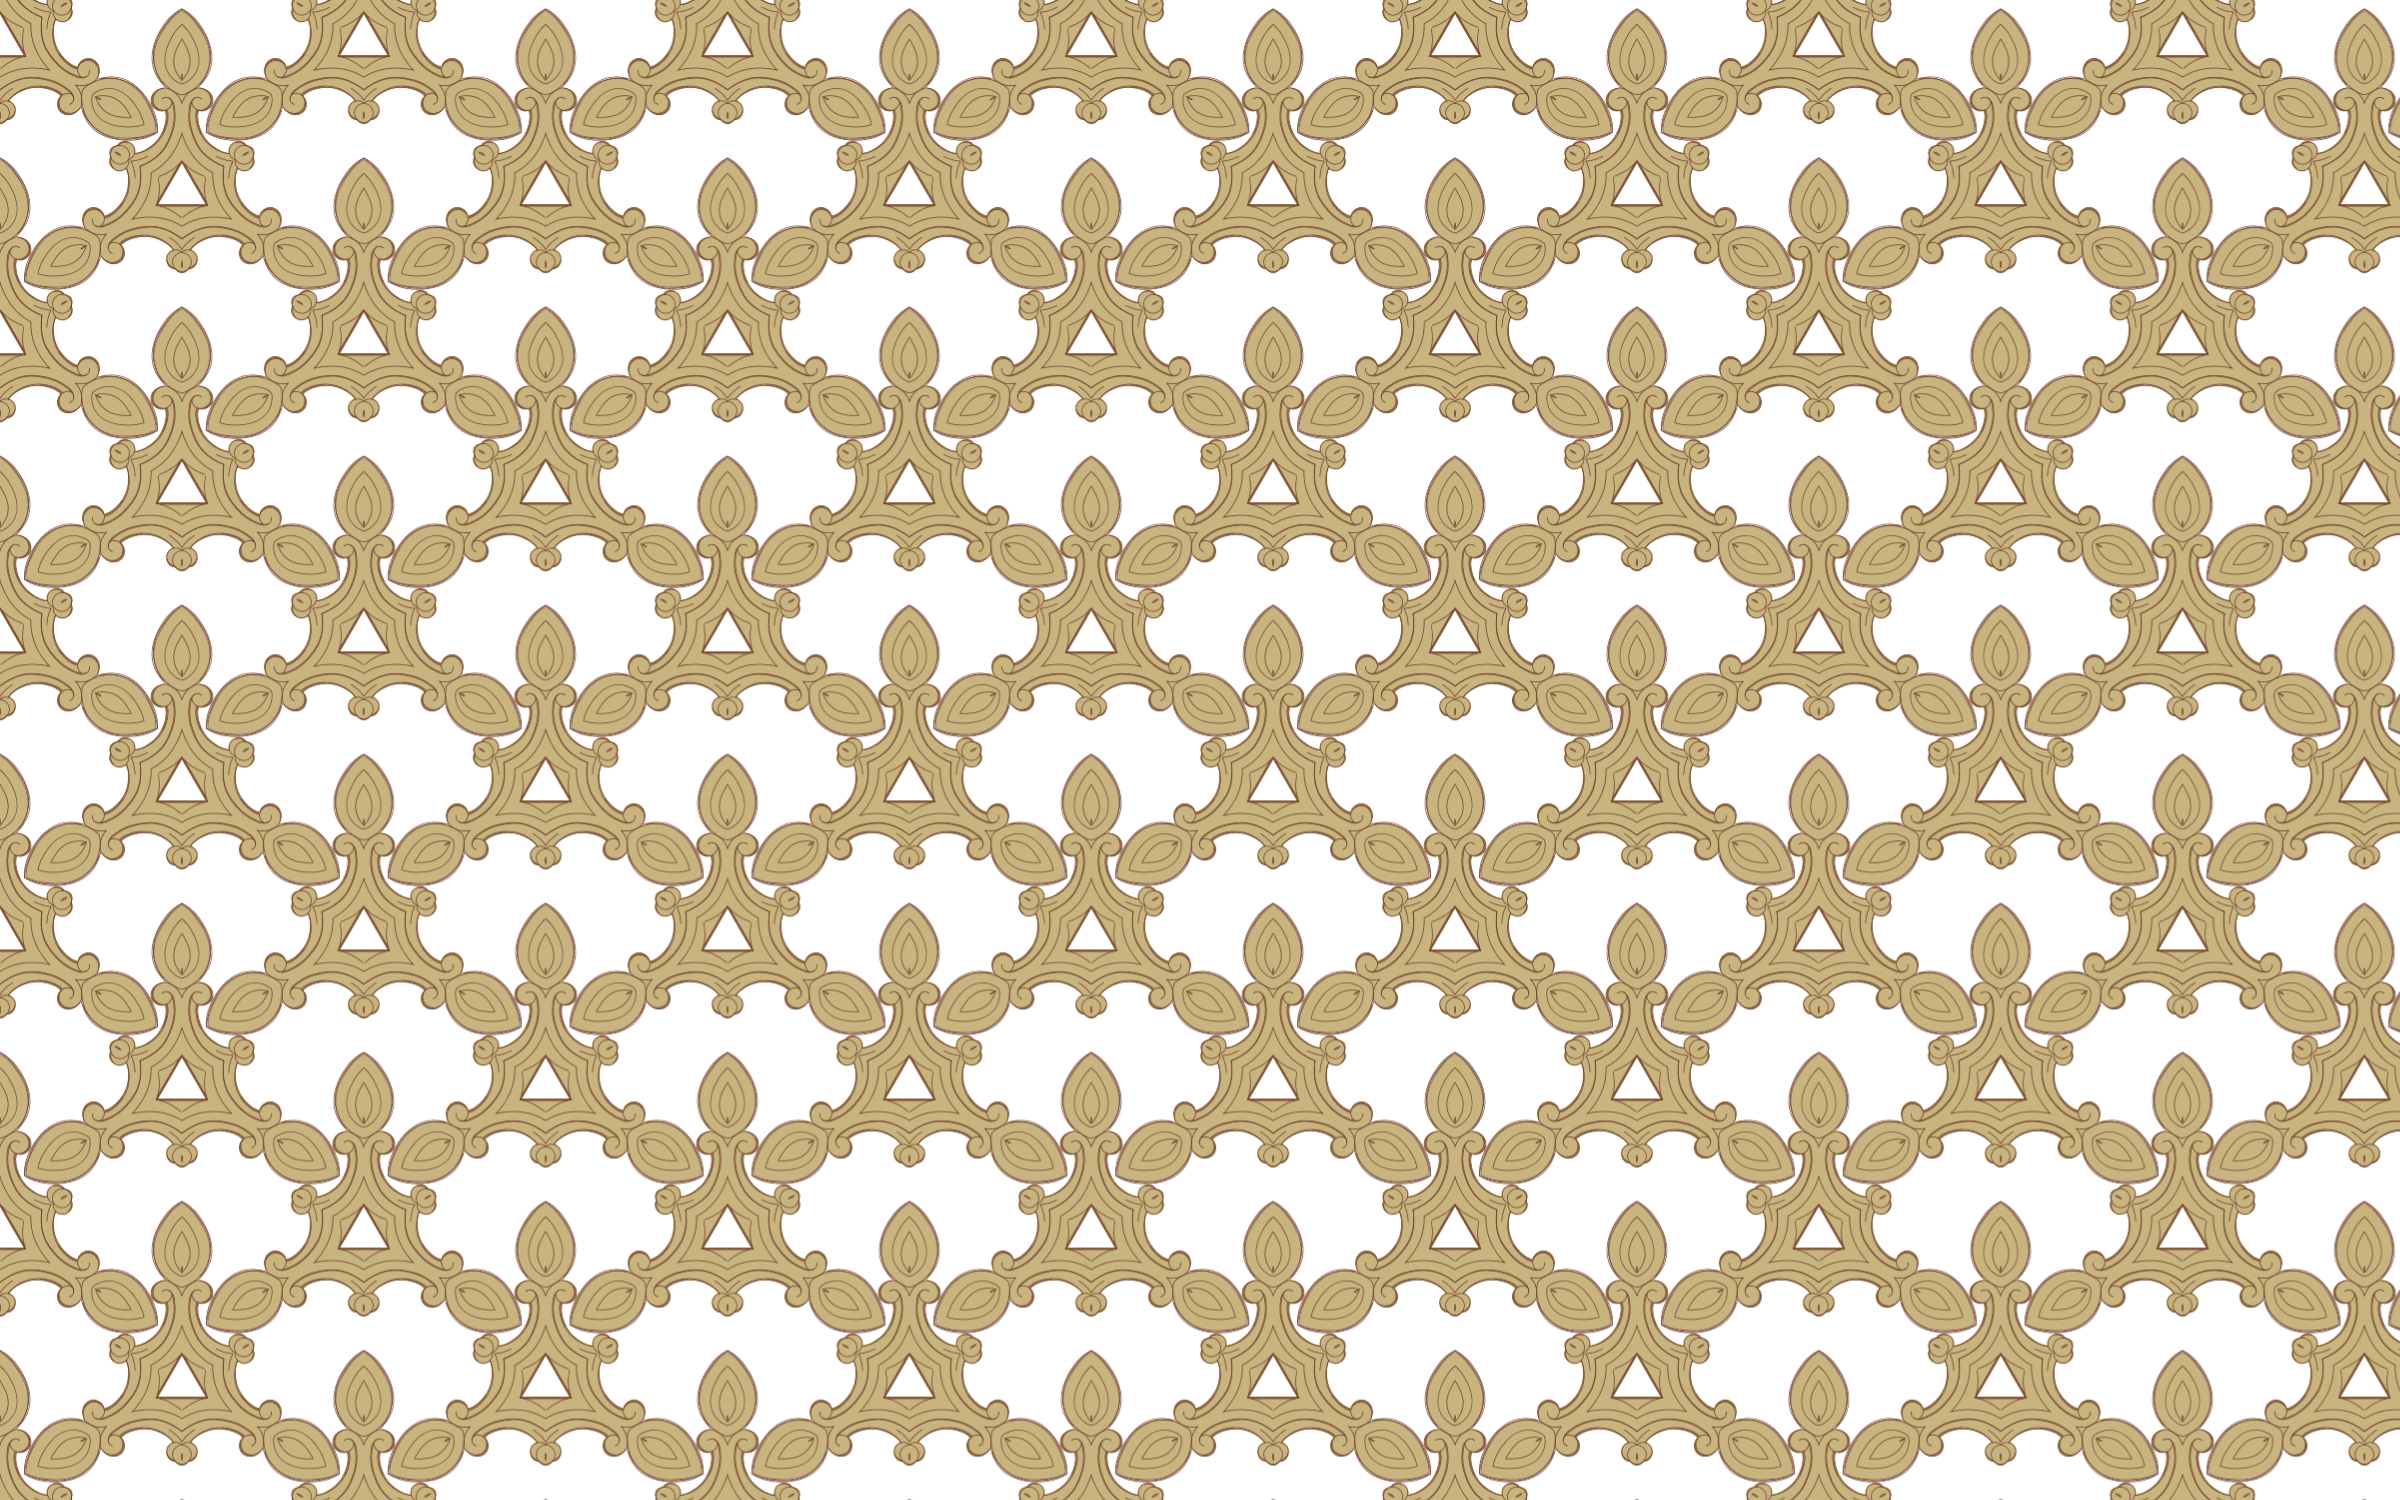 Seamless Ornate Frame 24 Derived Pattern 5 by GDJ